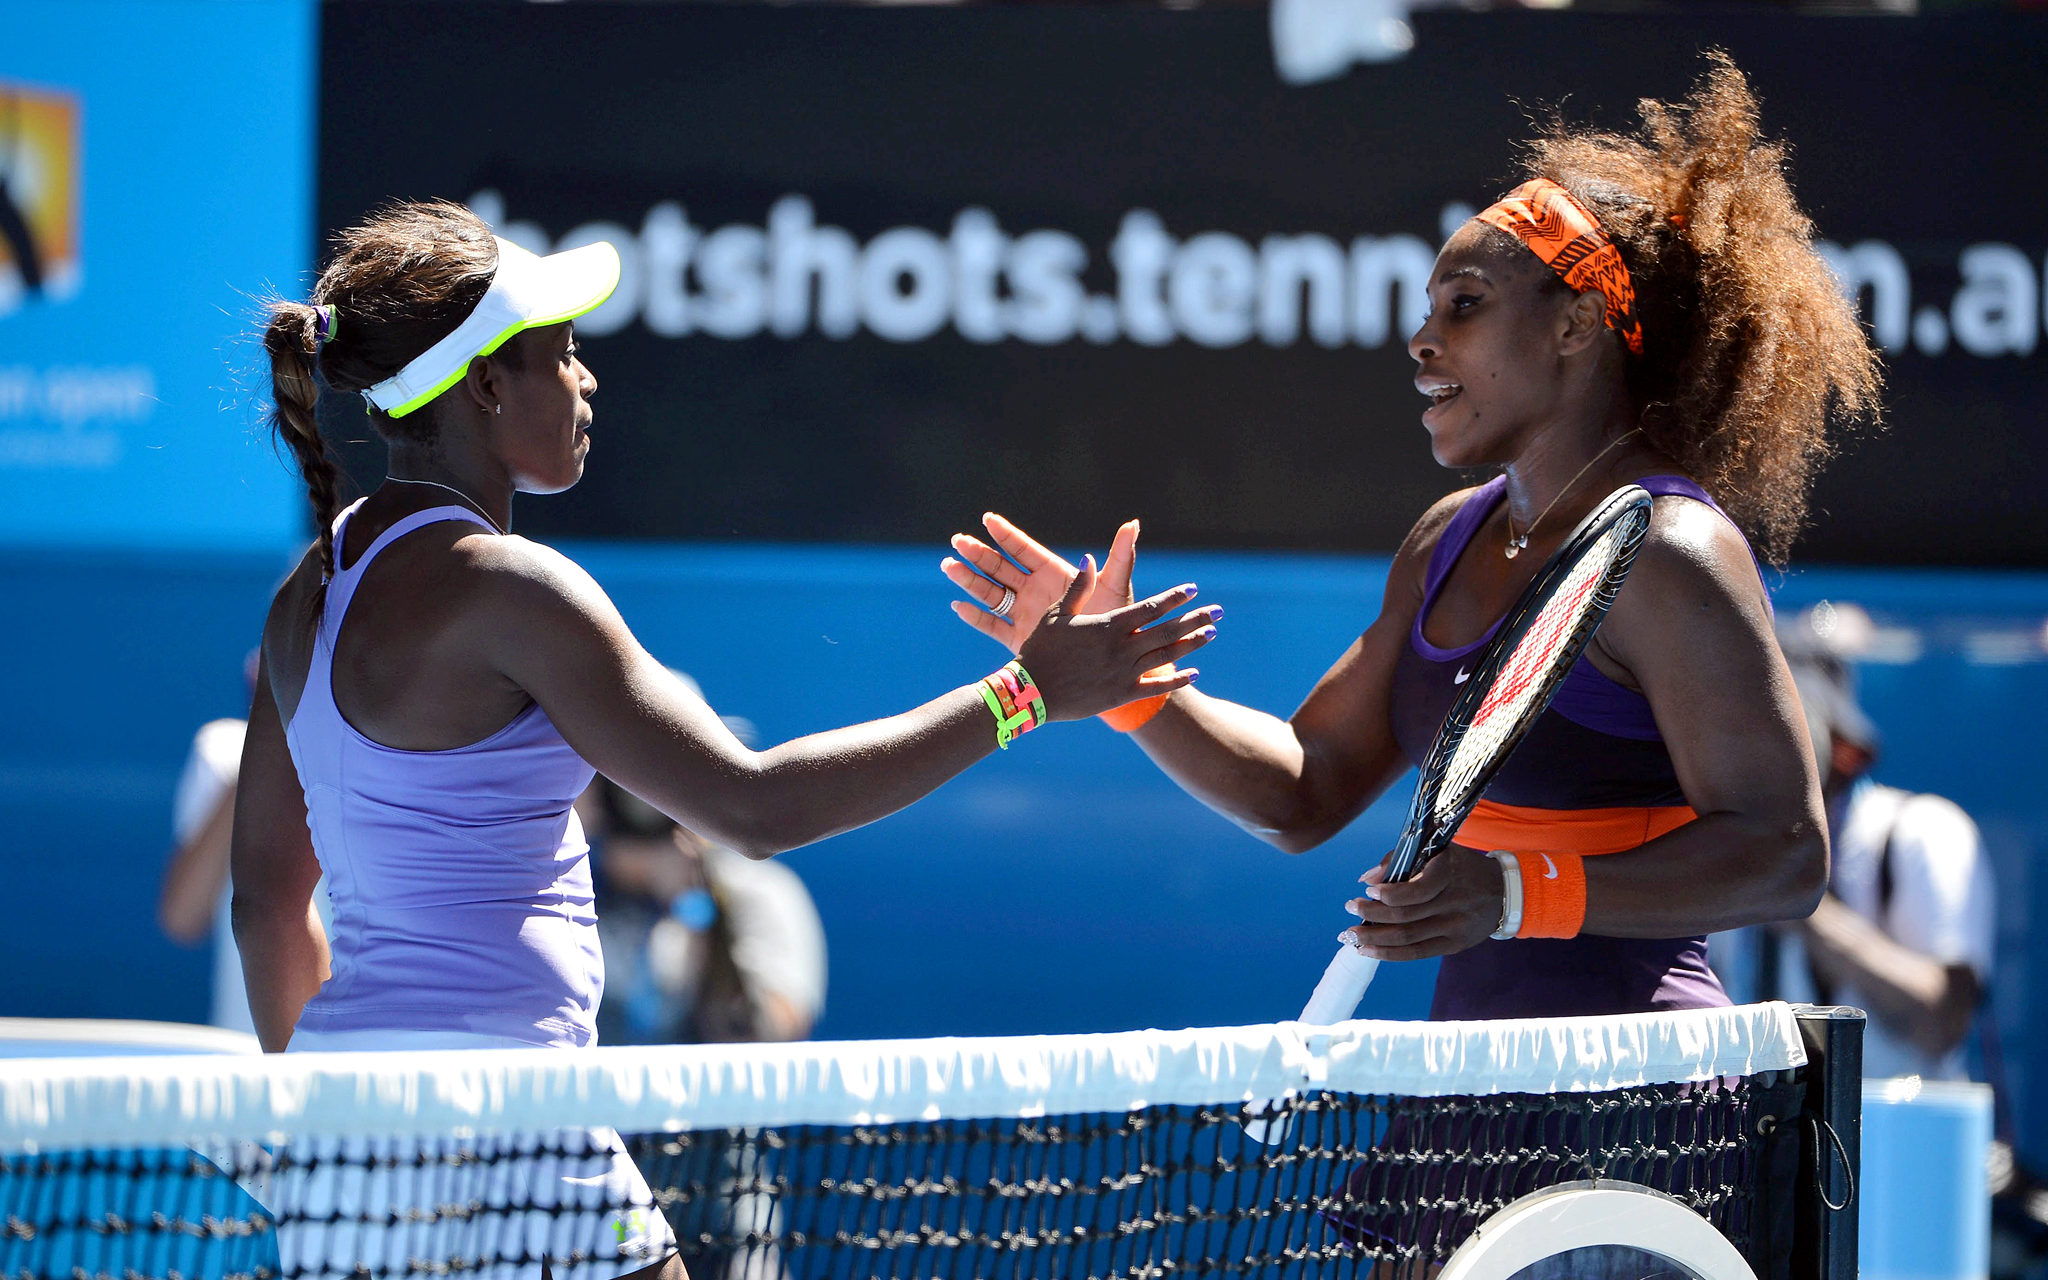 Sloane Stephens and Serena Williams